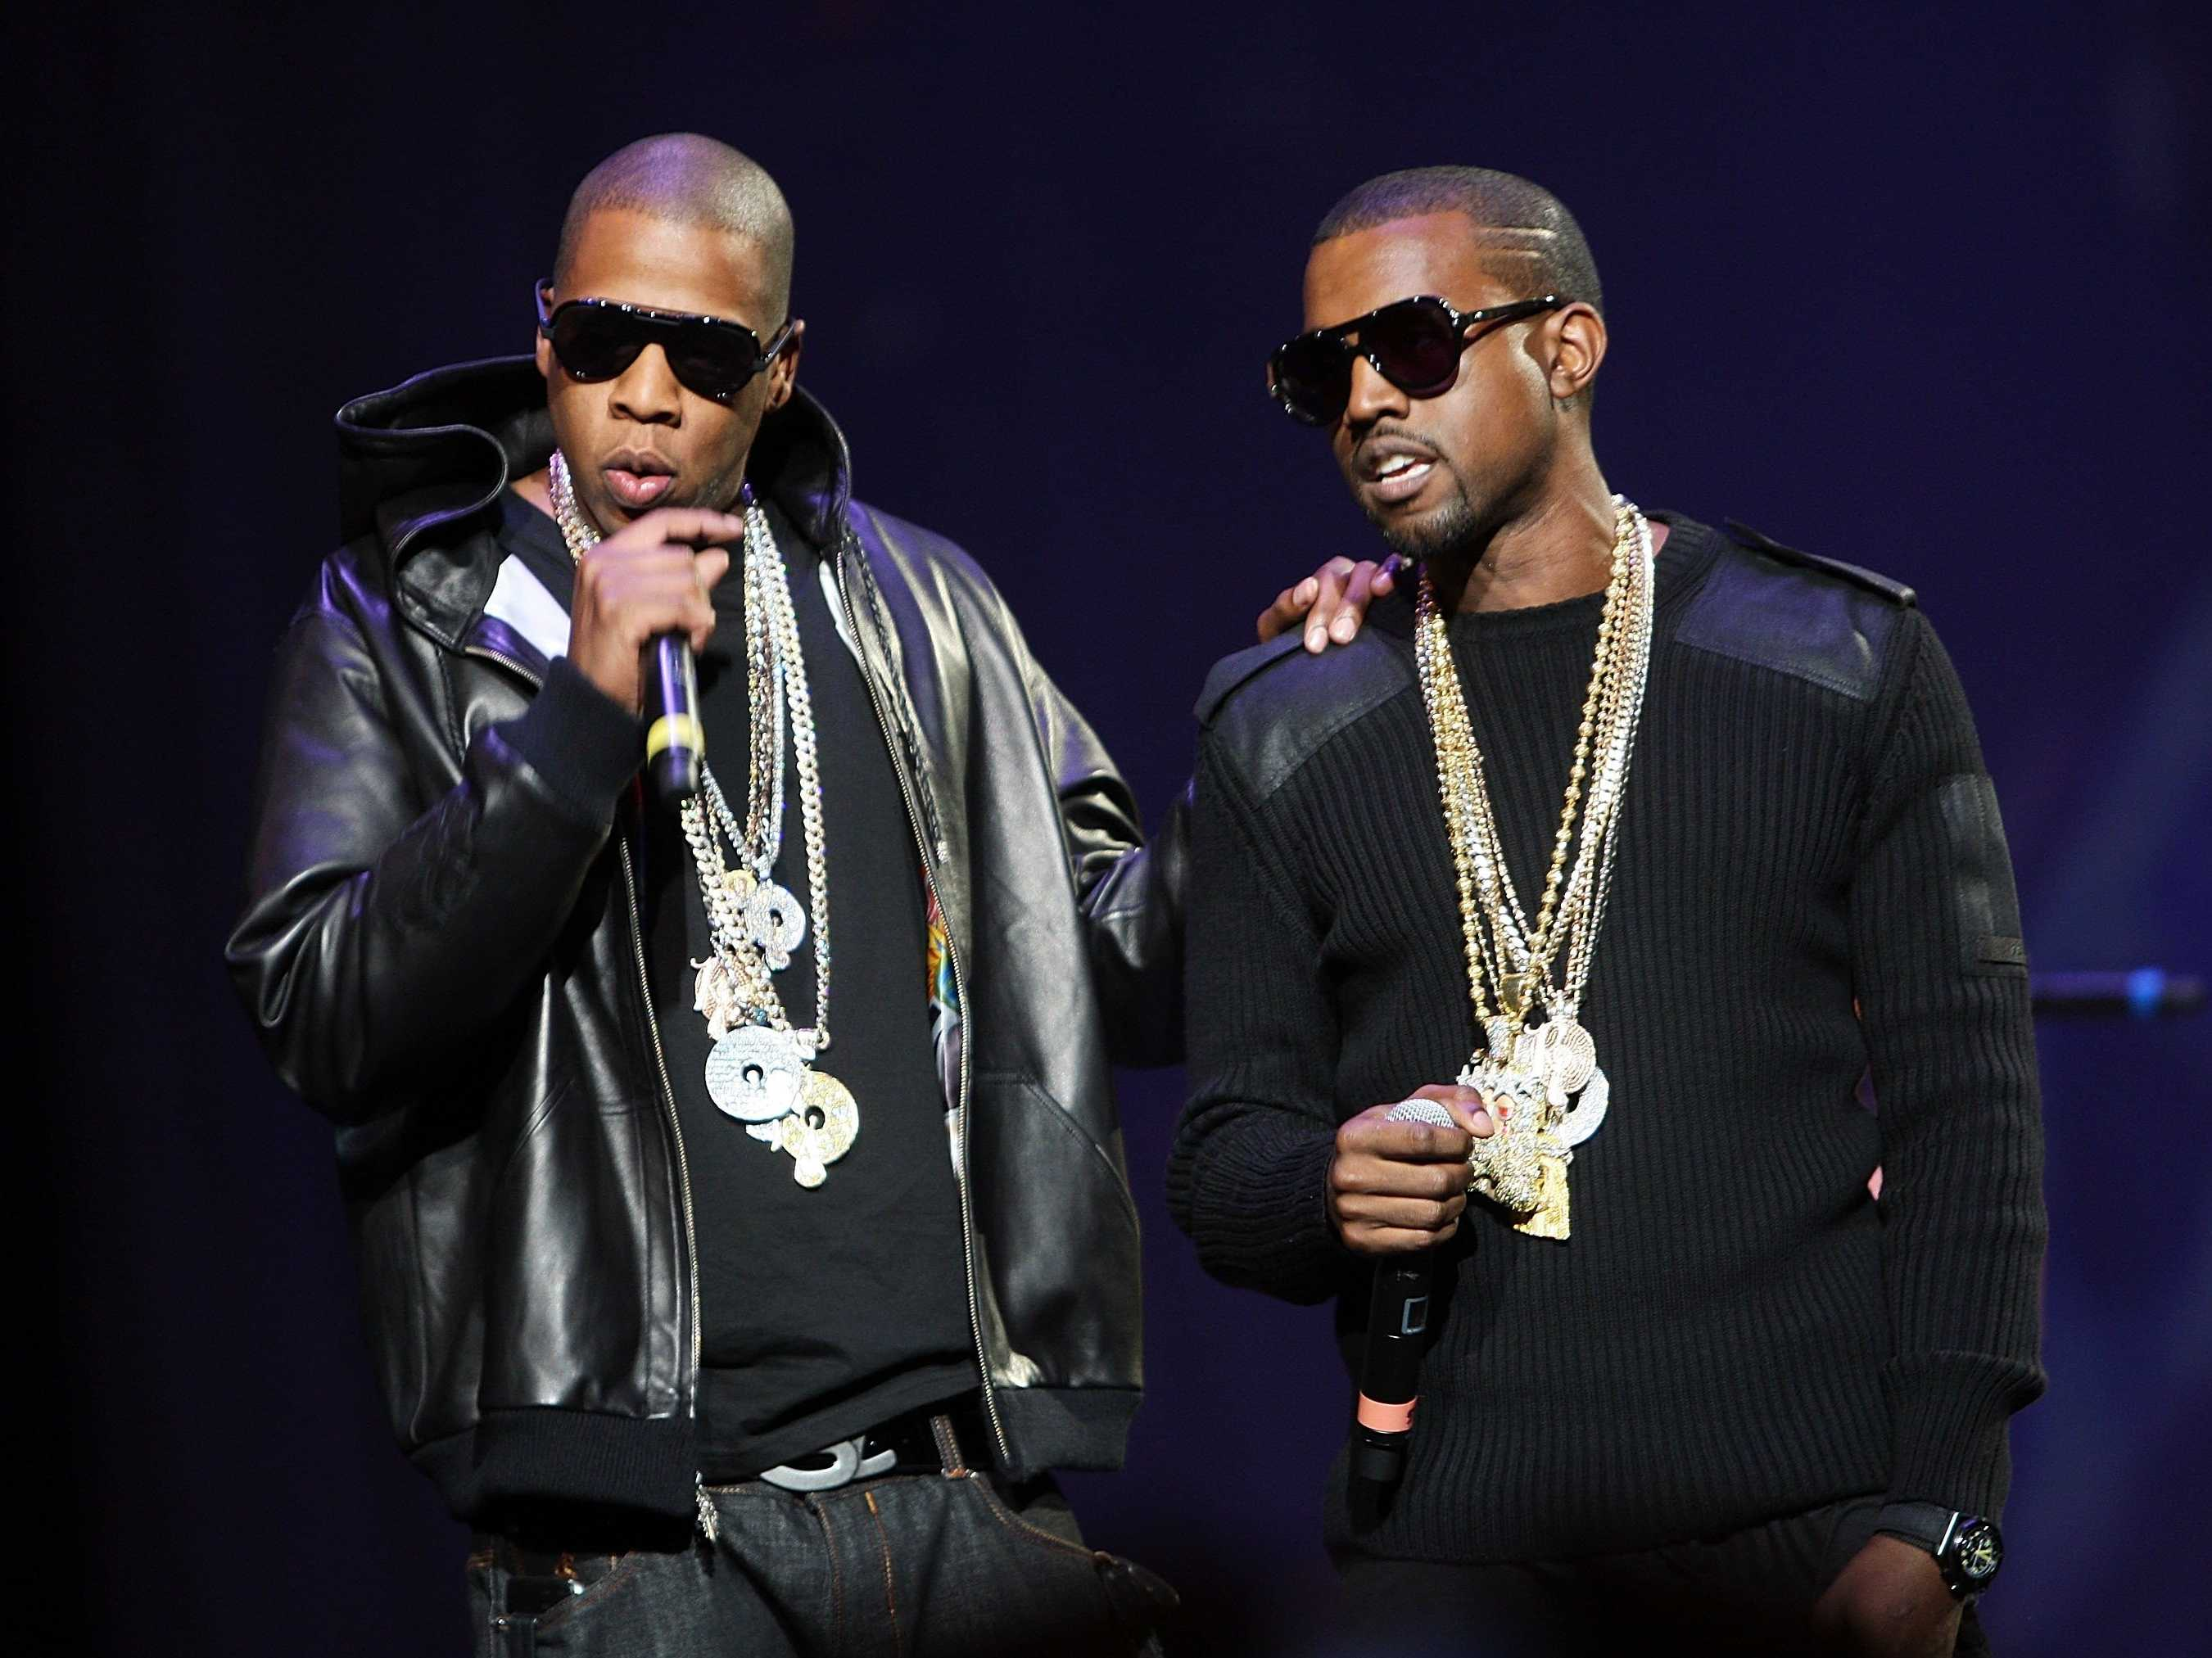 1461339314_heres-what-students-learn-in-a-college-course-on-kanye-west-and-jay-zs-relationship